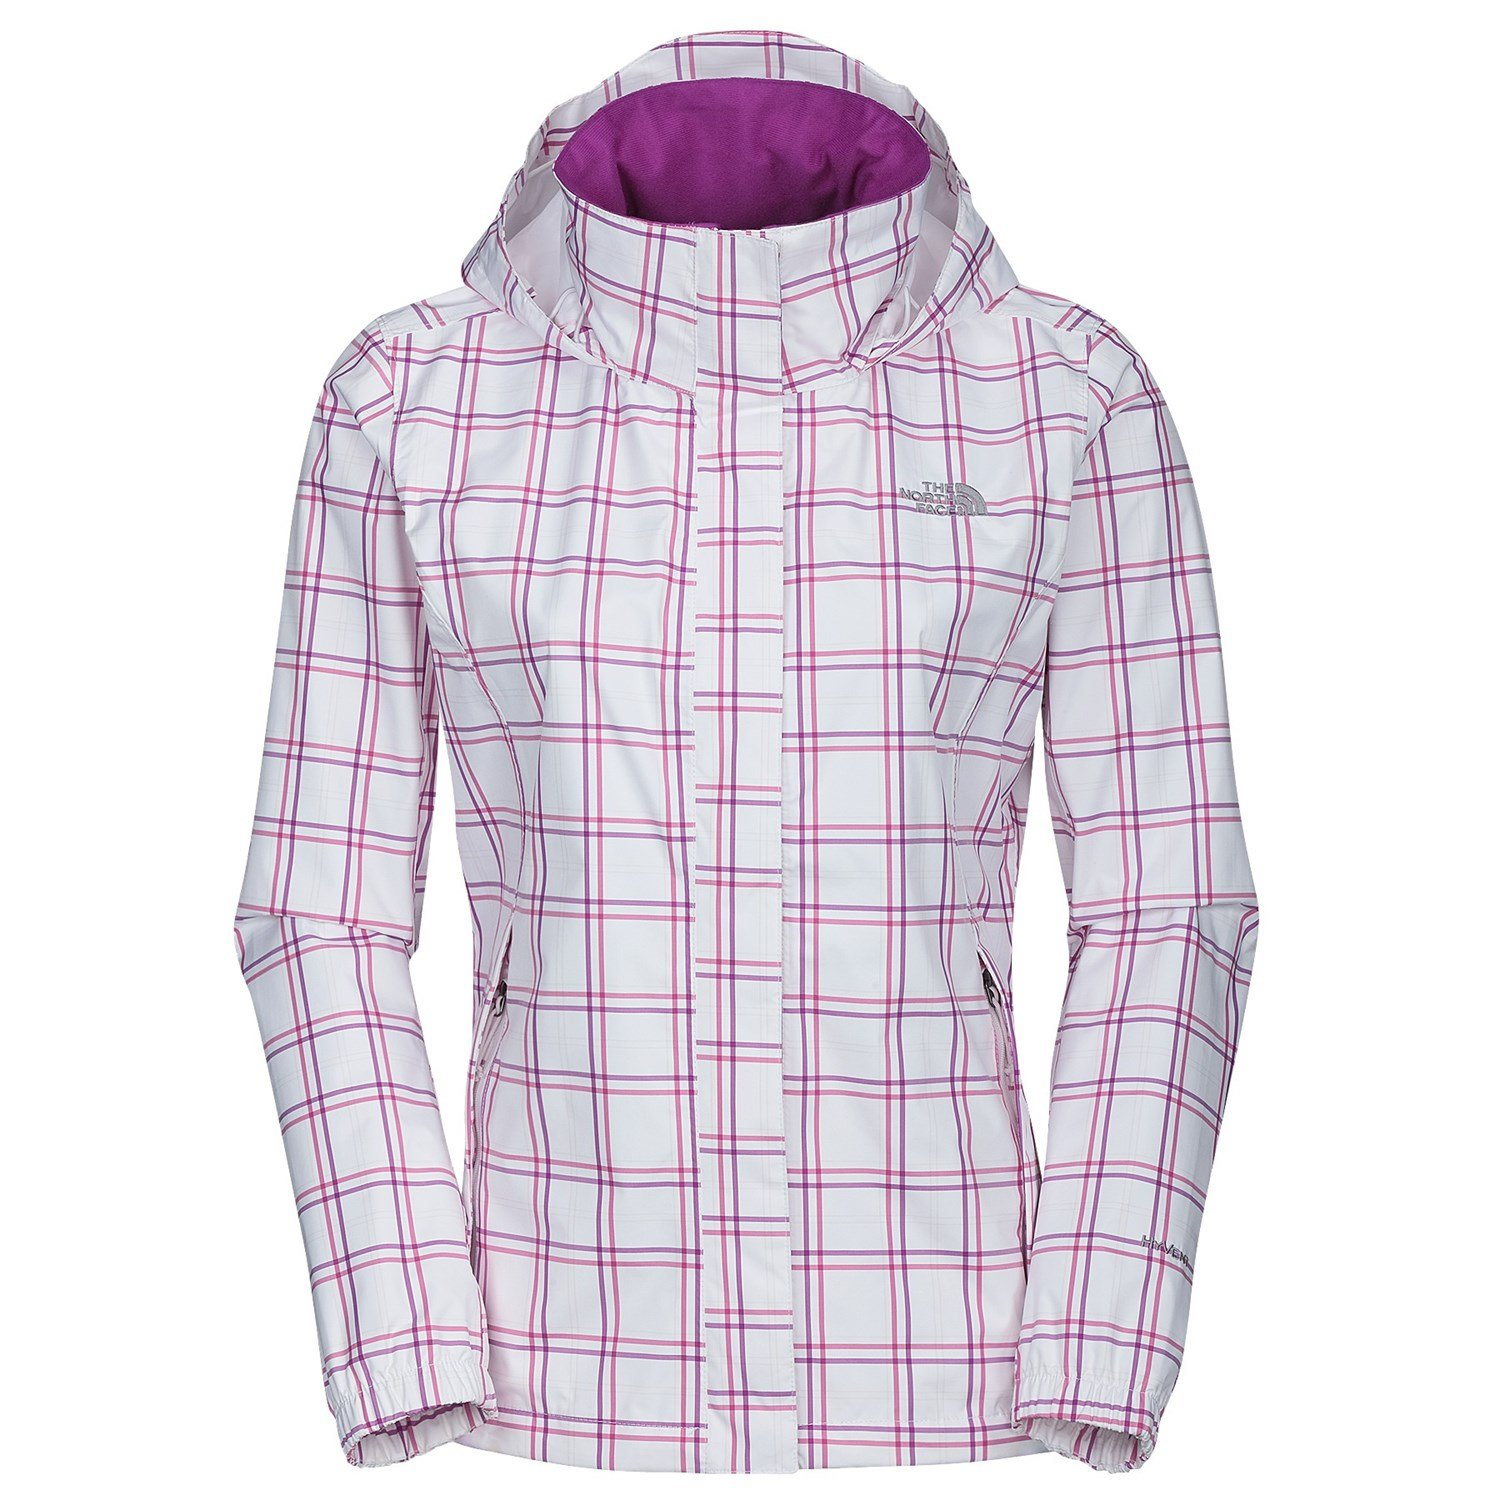 The North Face Women's novelty resolve Jacket white pink XS